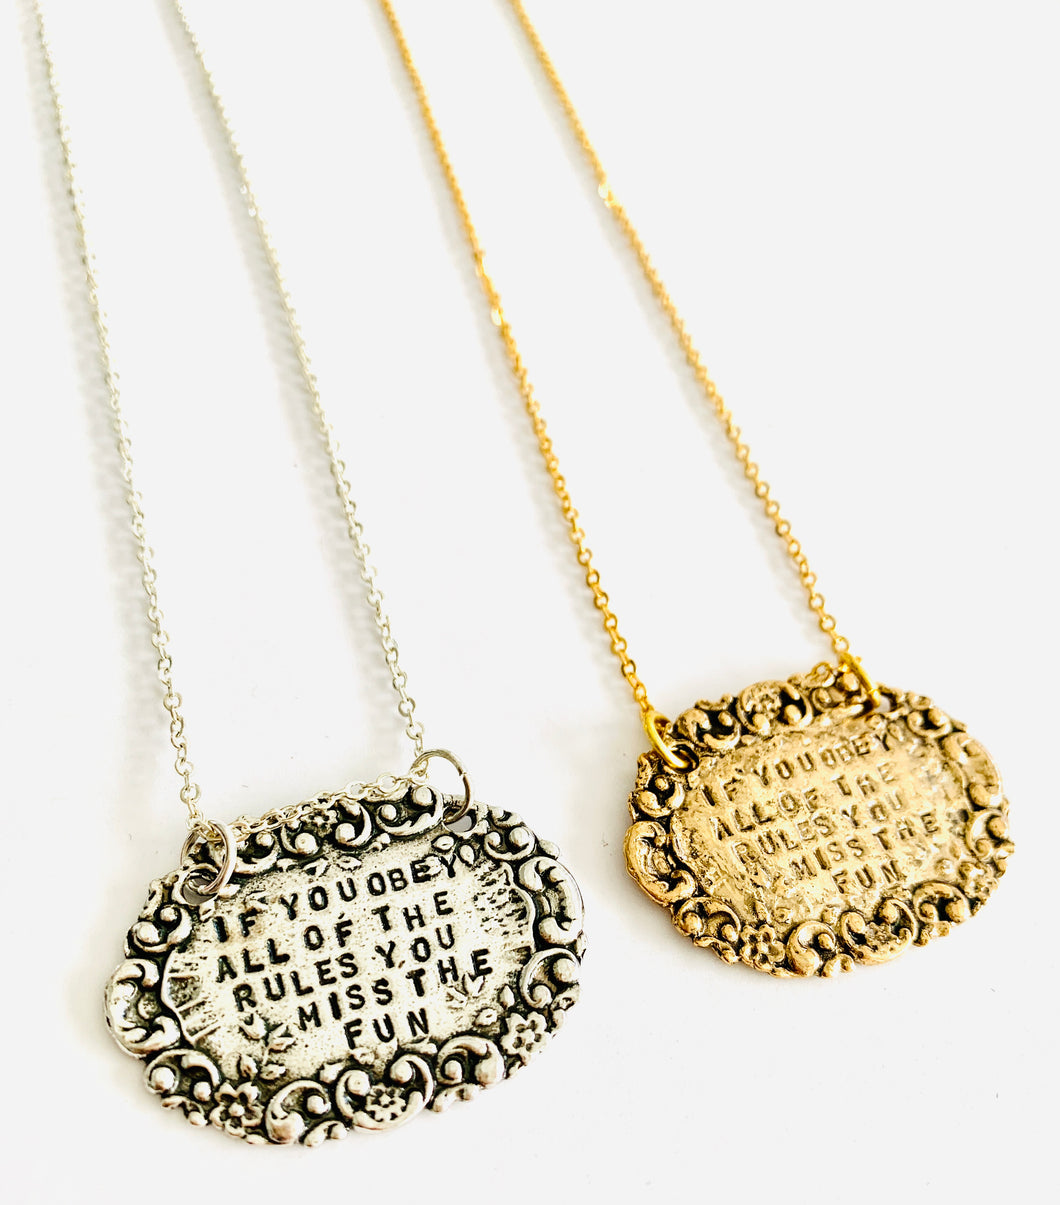 If You Obey All of the Rules You Miss All of the Fun Necklace